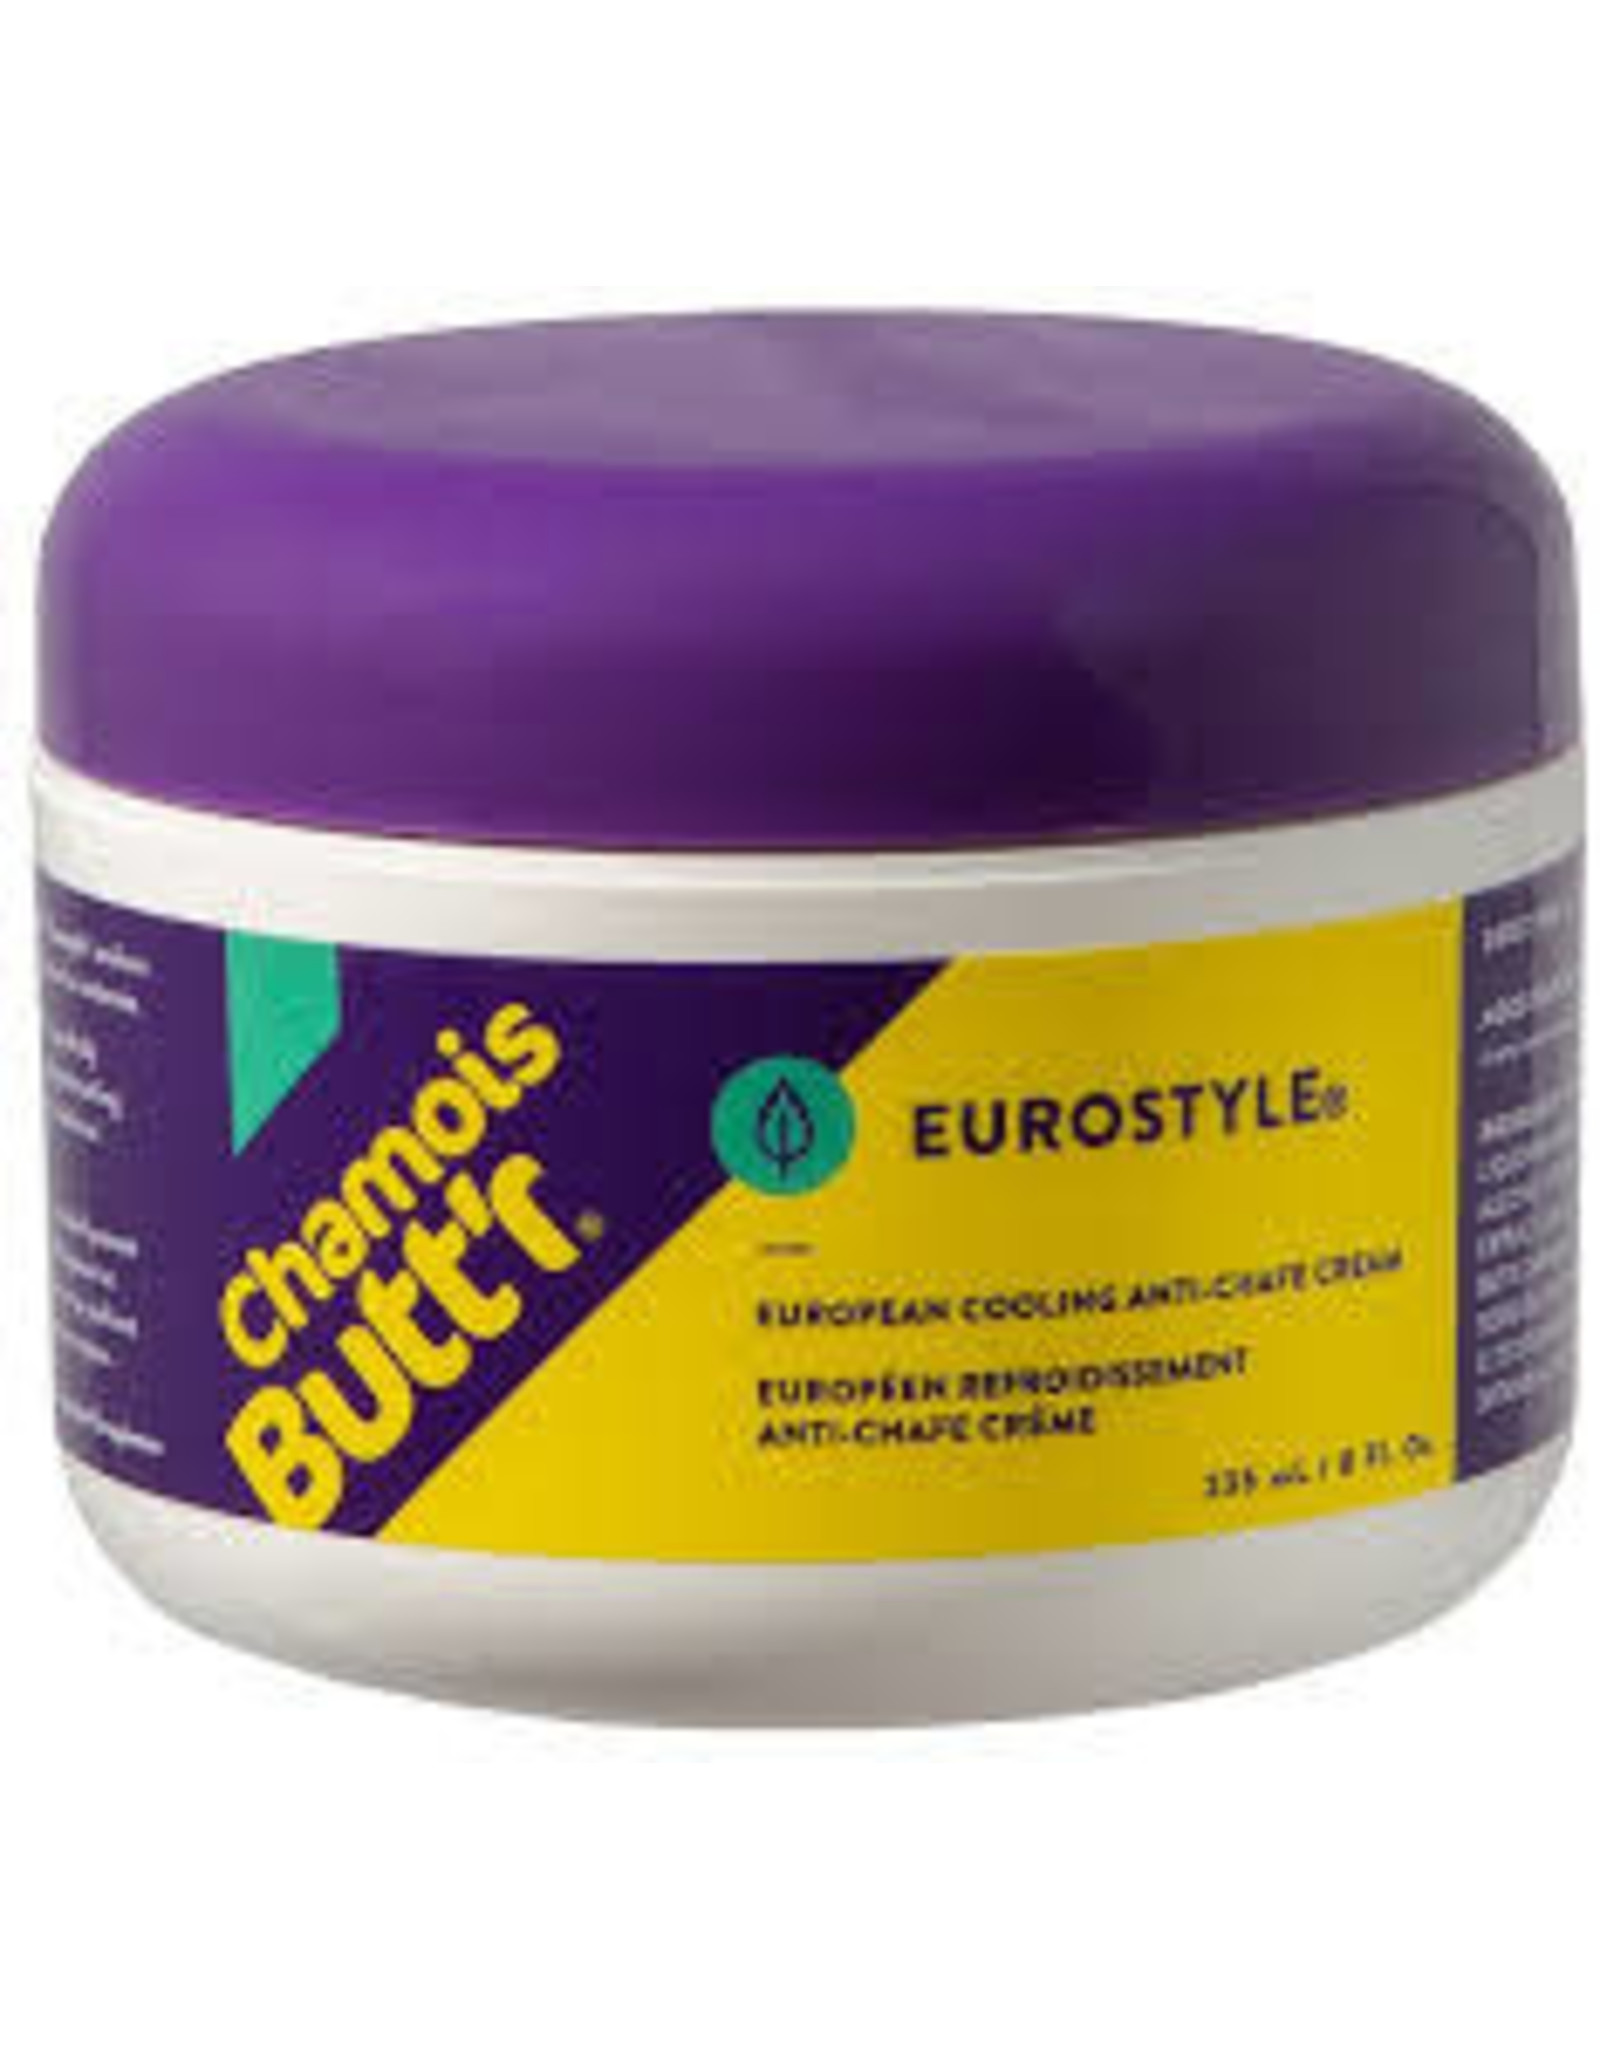 Paceline Products Skin Care Paceline Eurostyle Chamois Butt'r: 8oz